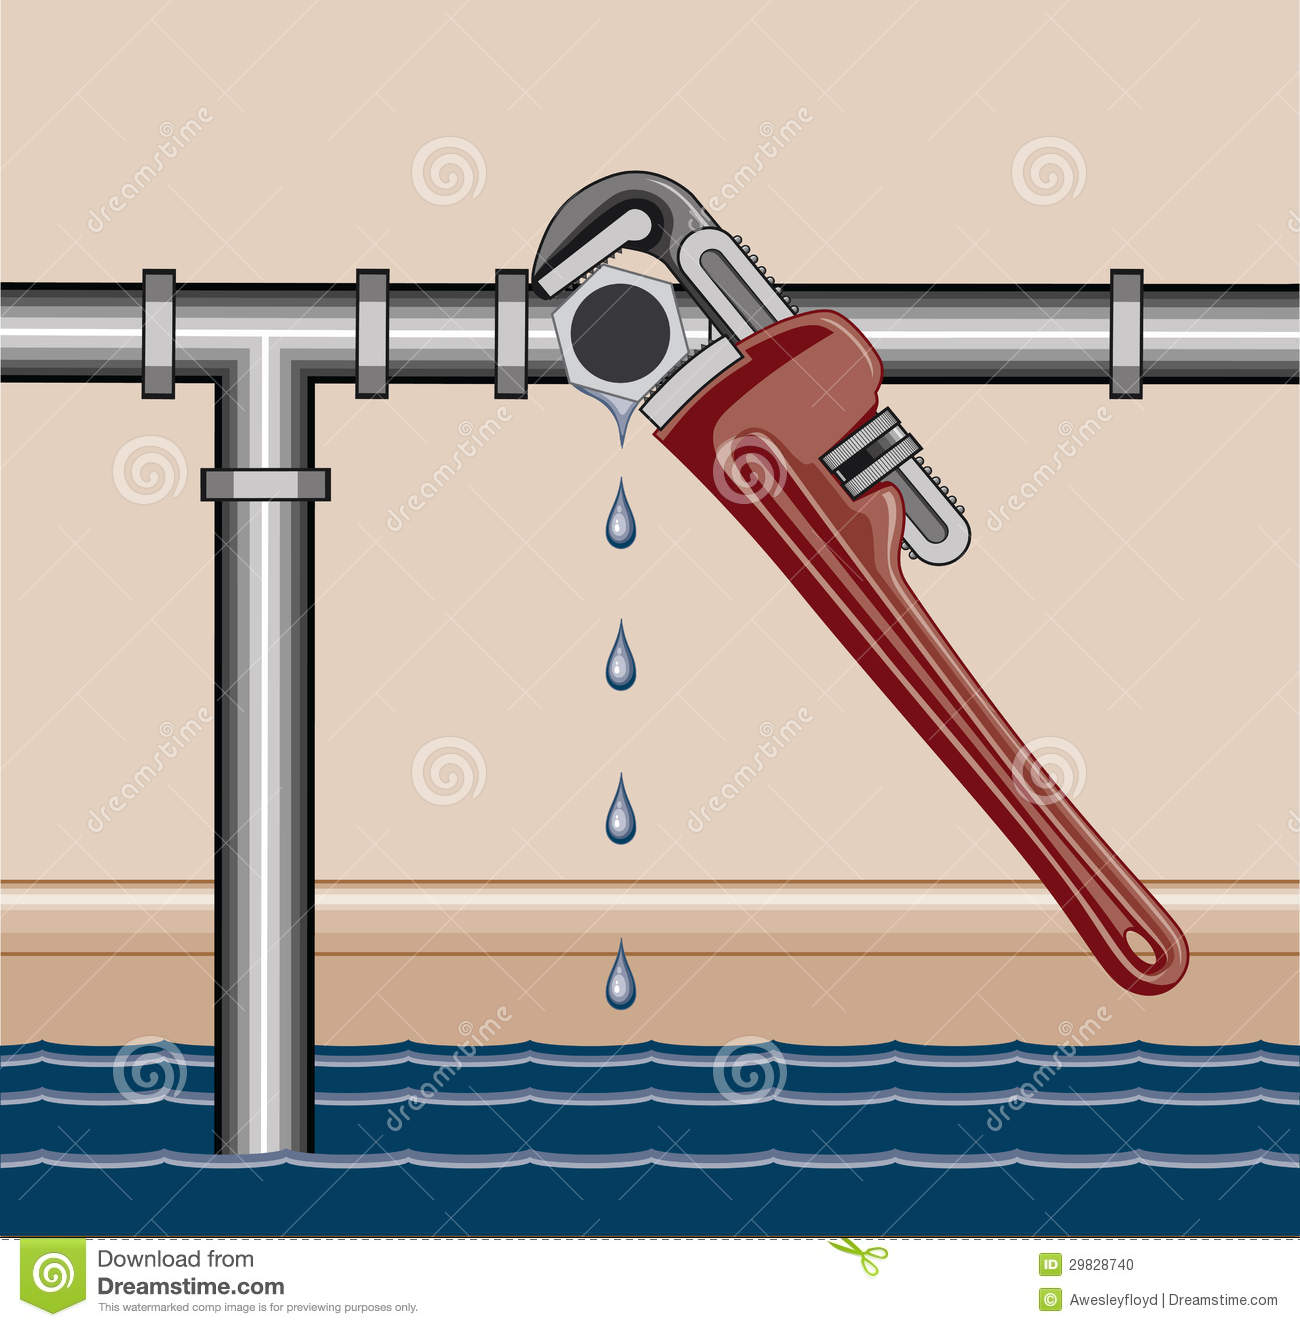 Illustration of a leaking water pipe being repaired using a plumbers #063D60